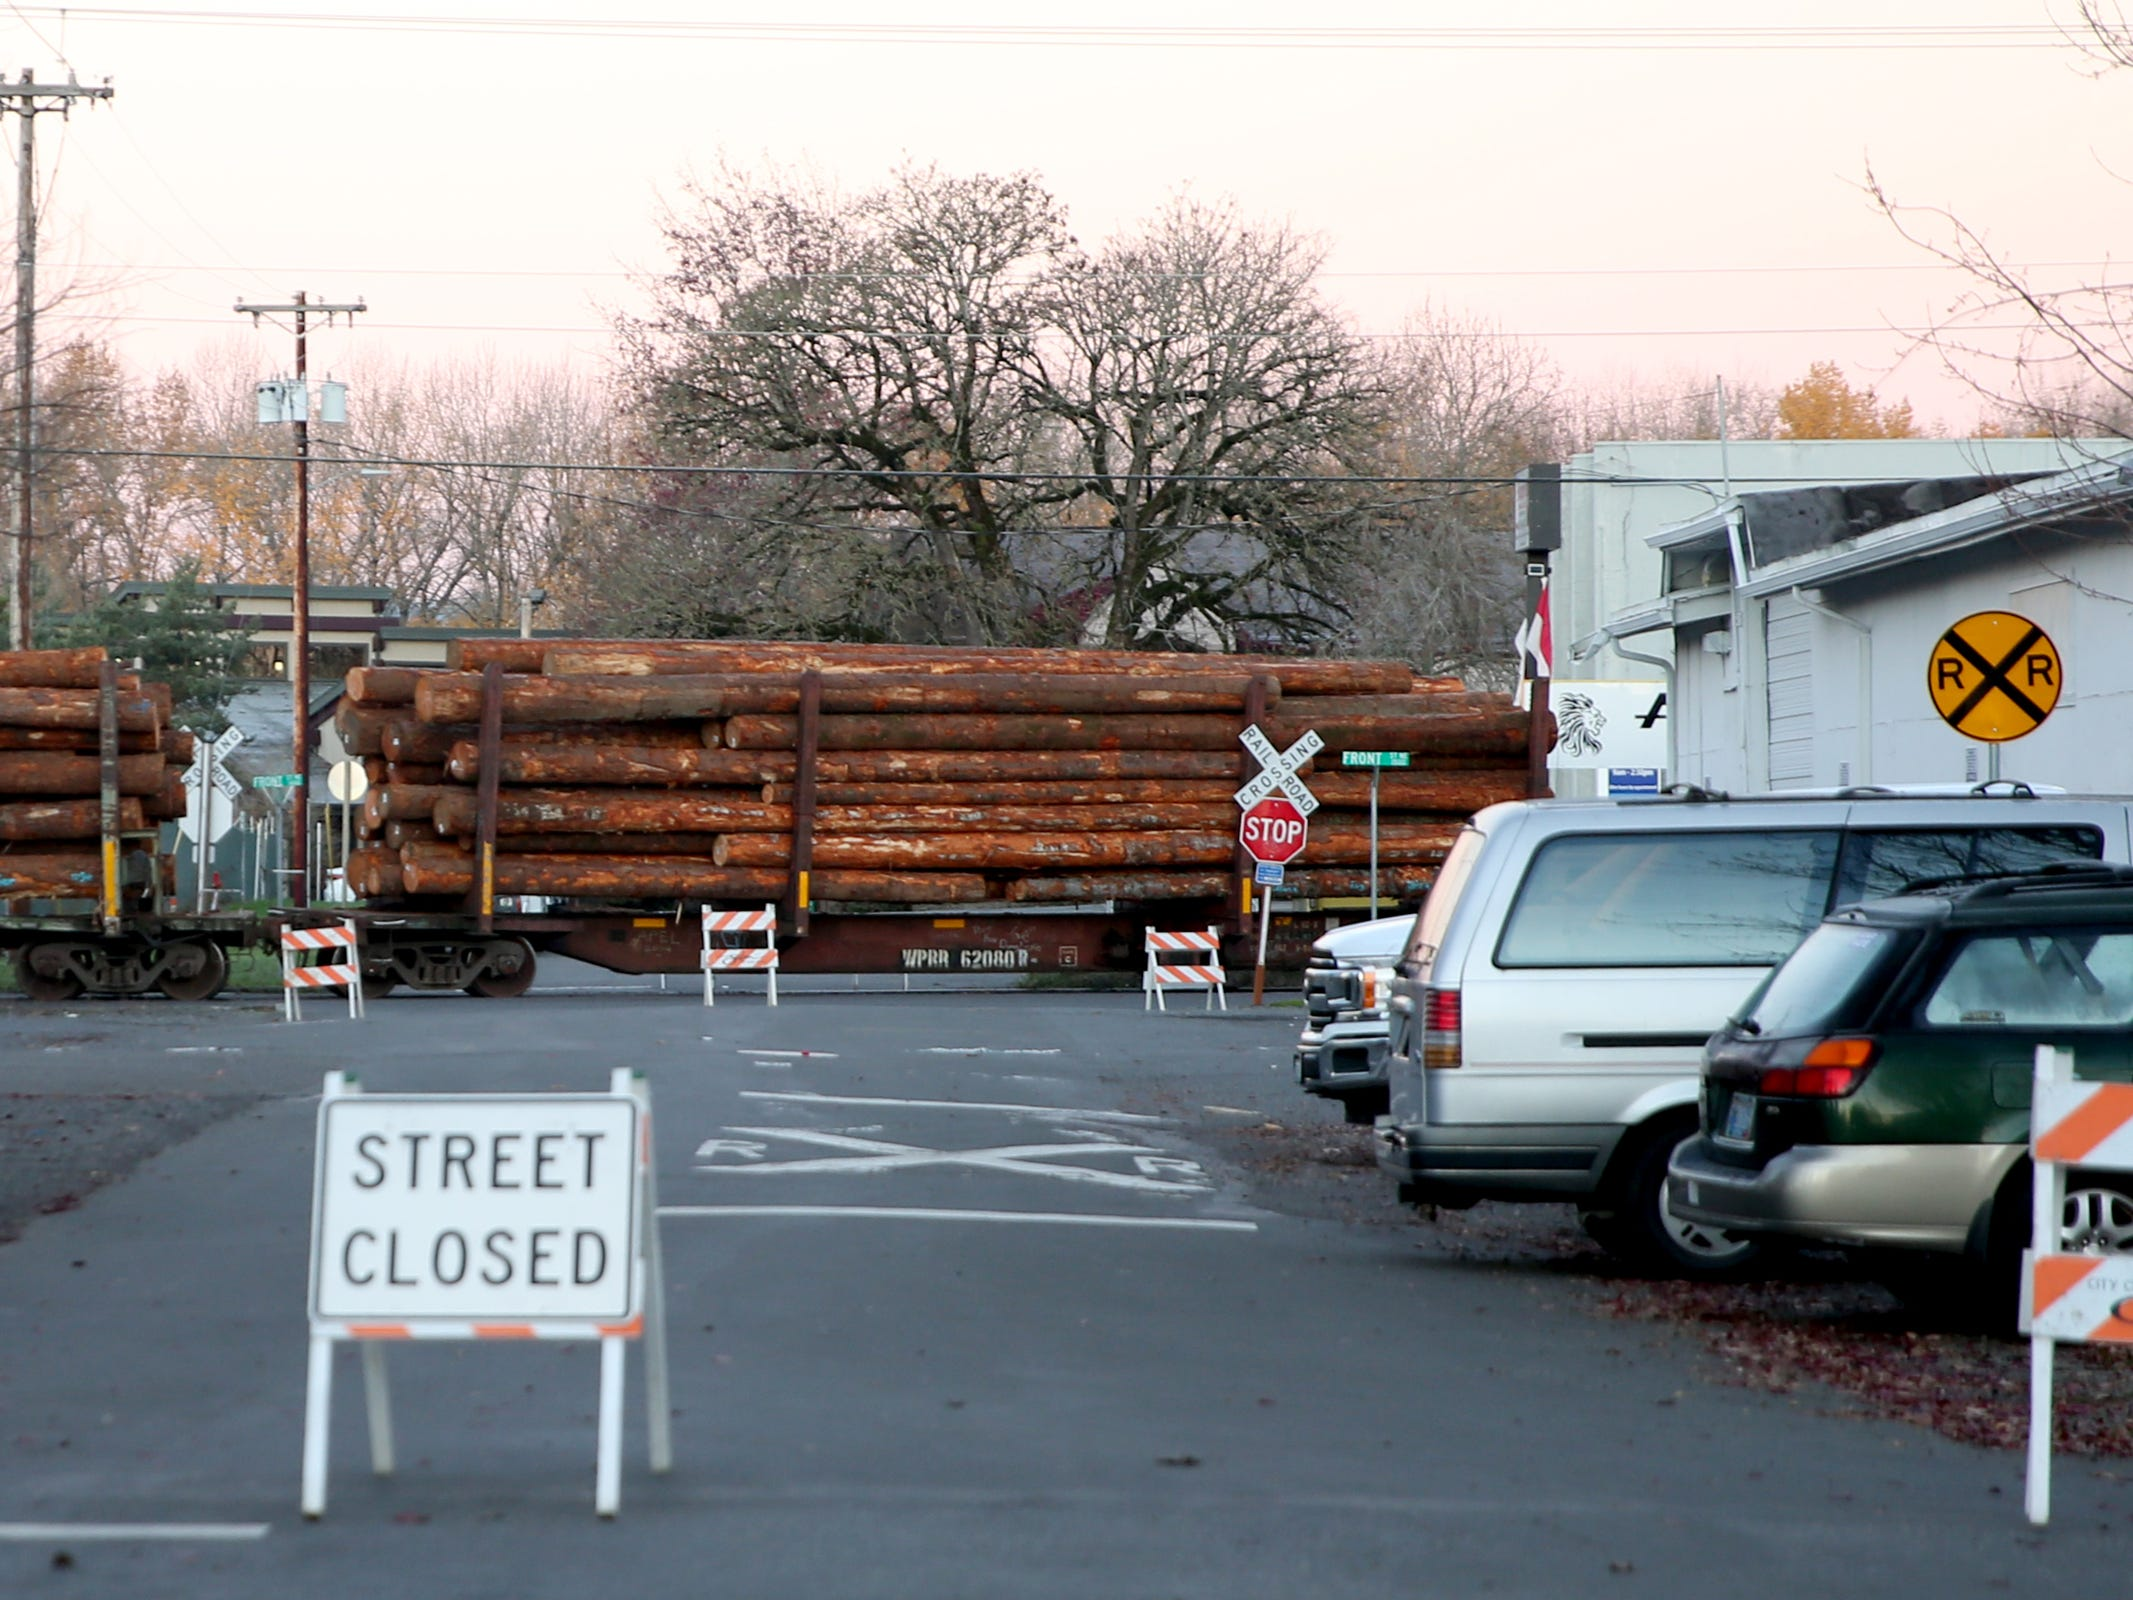 Crews work to clear the scene after a log train derailment in Salem on Wednesday, Dec. 5, 2018. Front St. NE from Norway to D Streets NE are closed following the derailment Tuesday night.